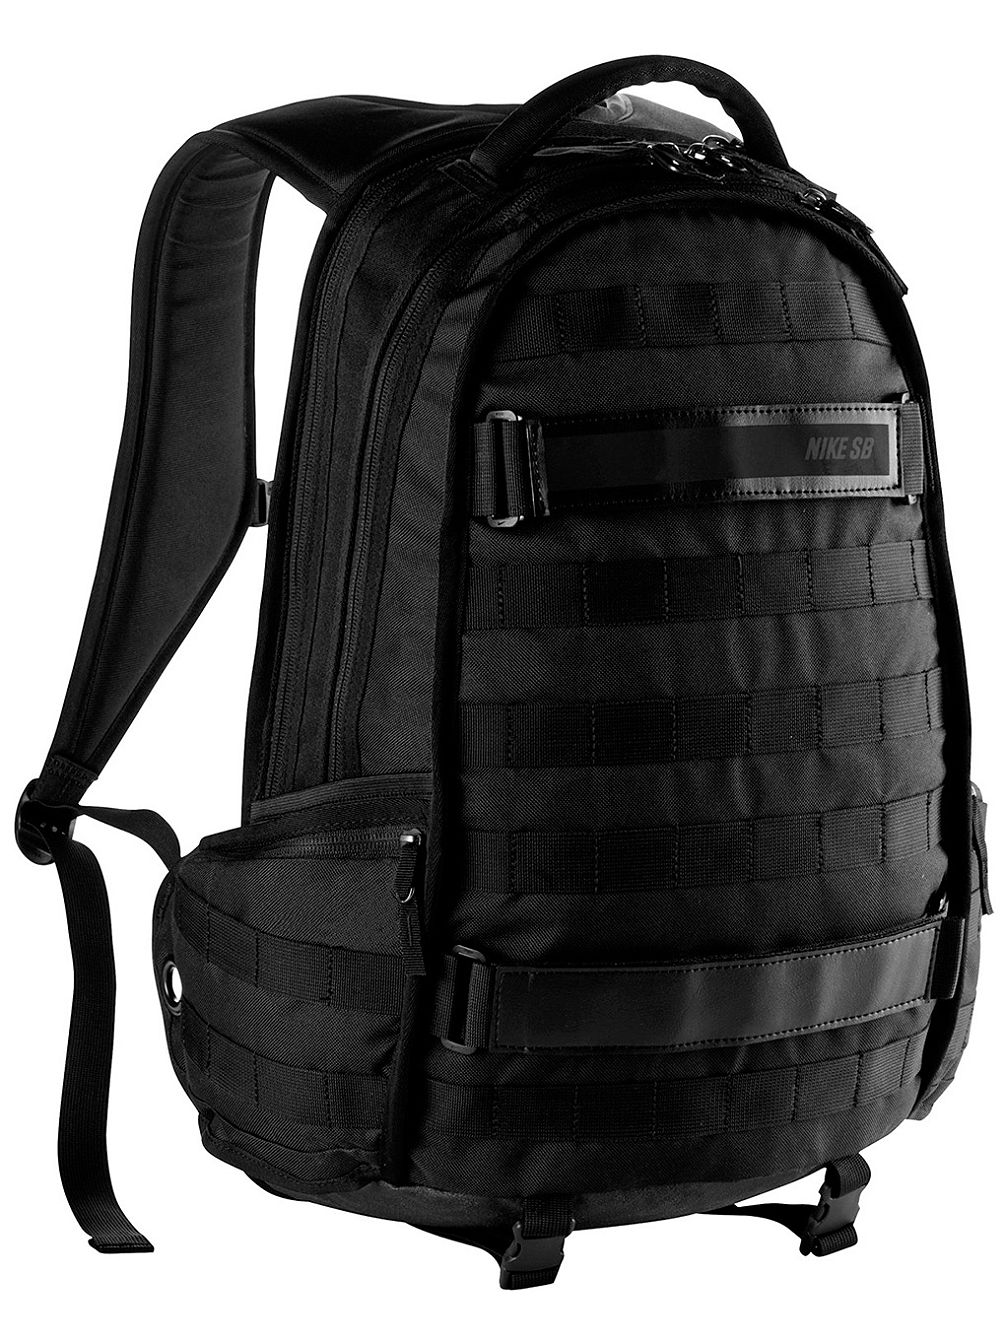 9b56f4be181a Buy Nike Nike SB RPM Backpack online at blue-tomato.com